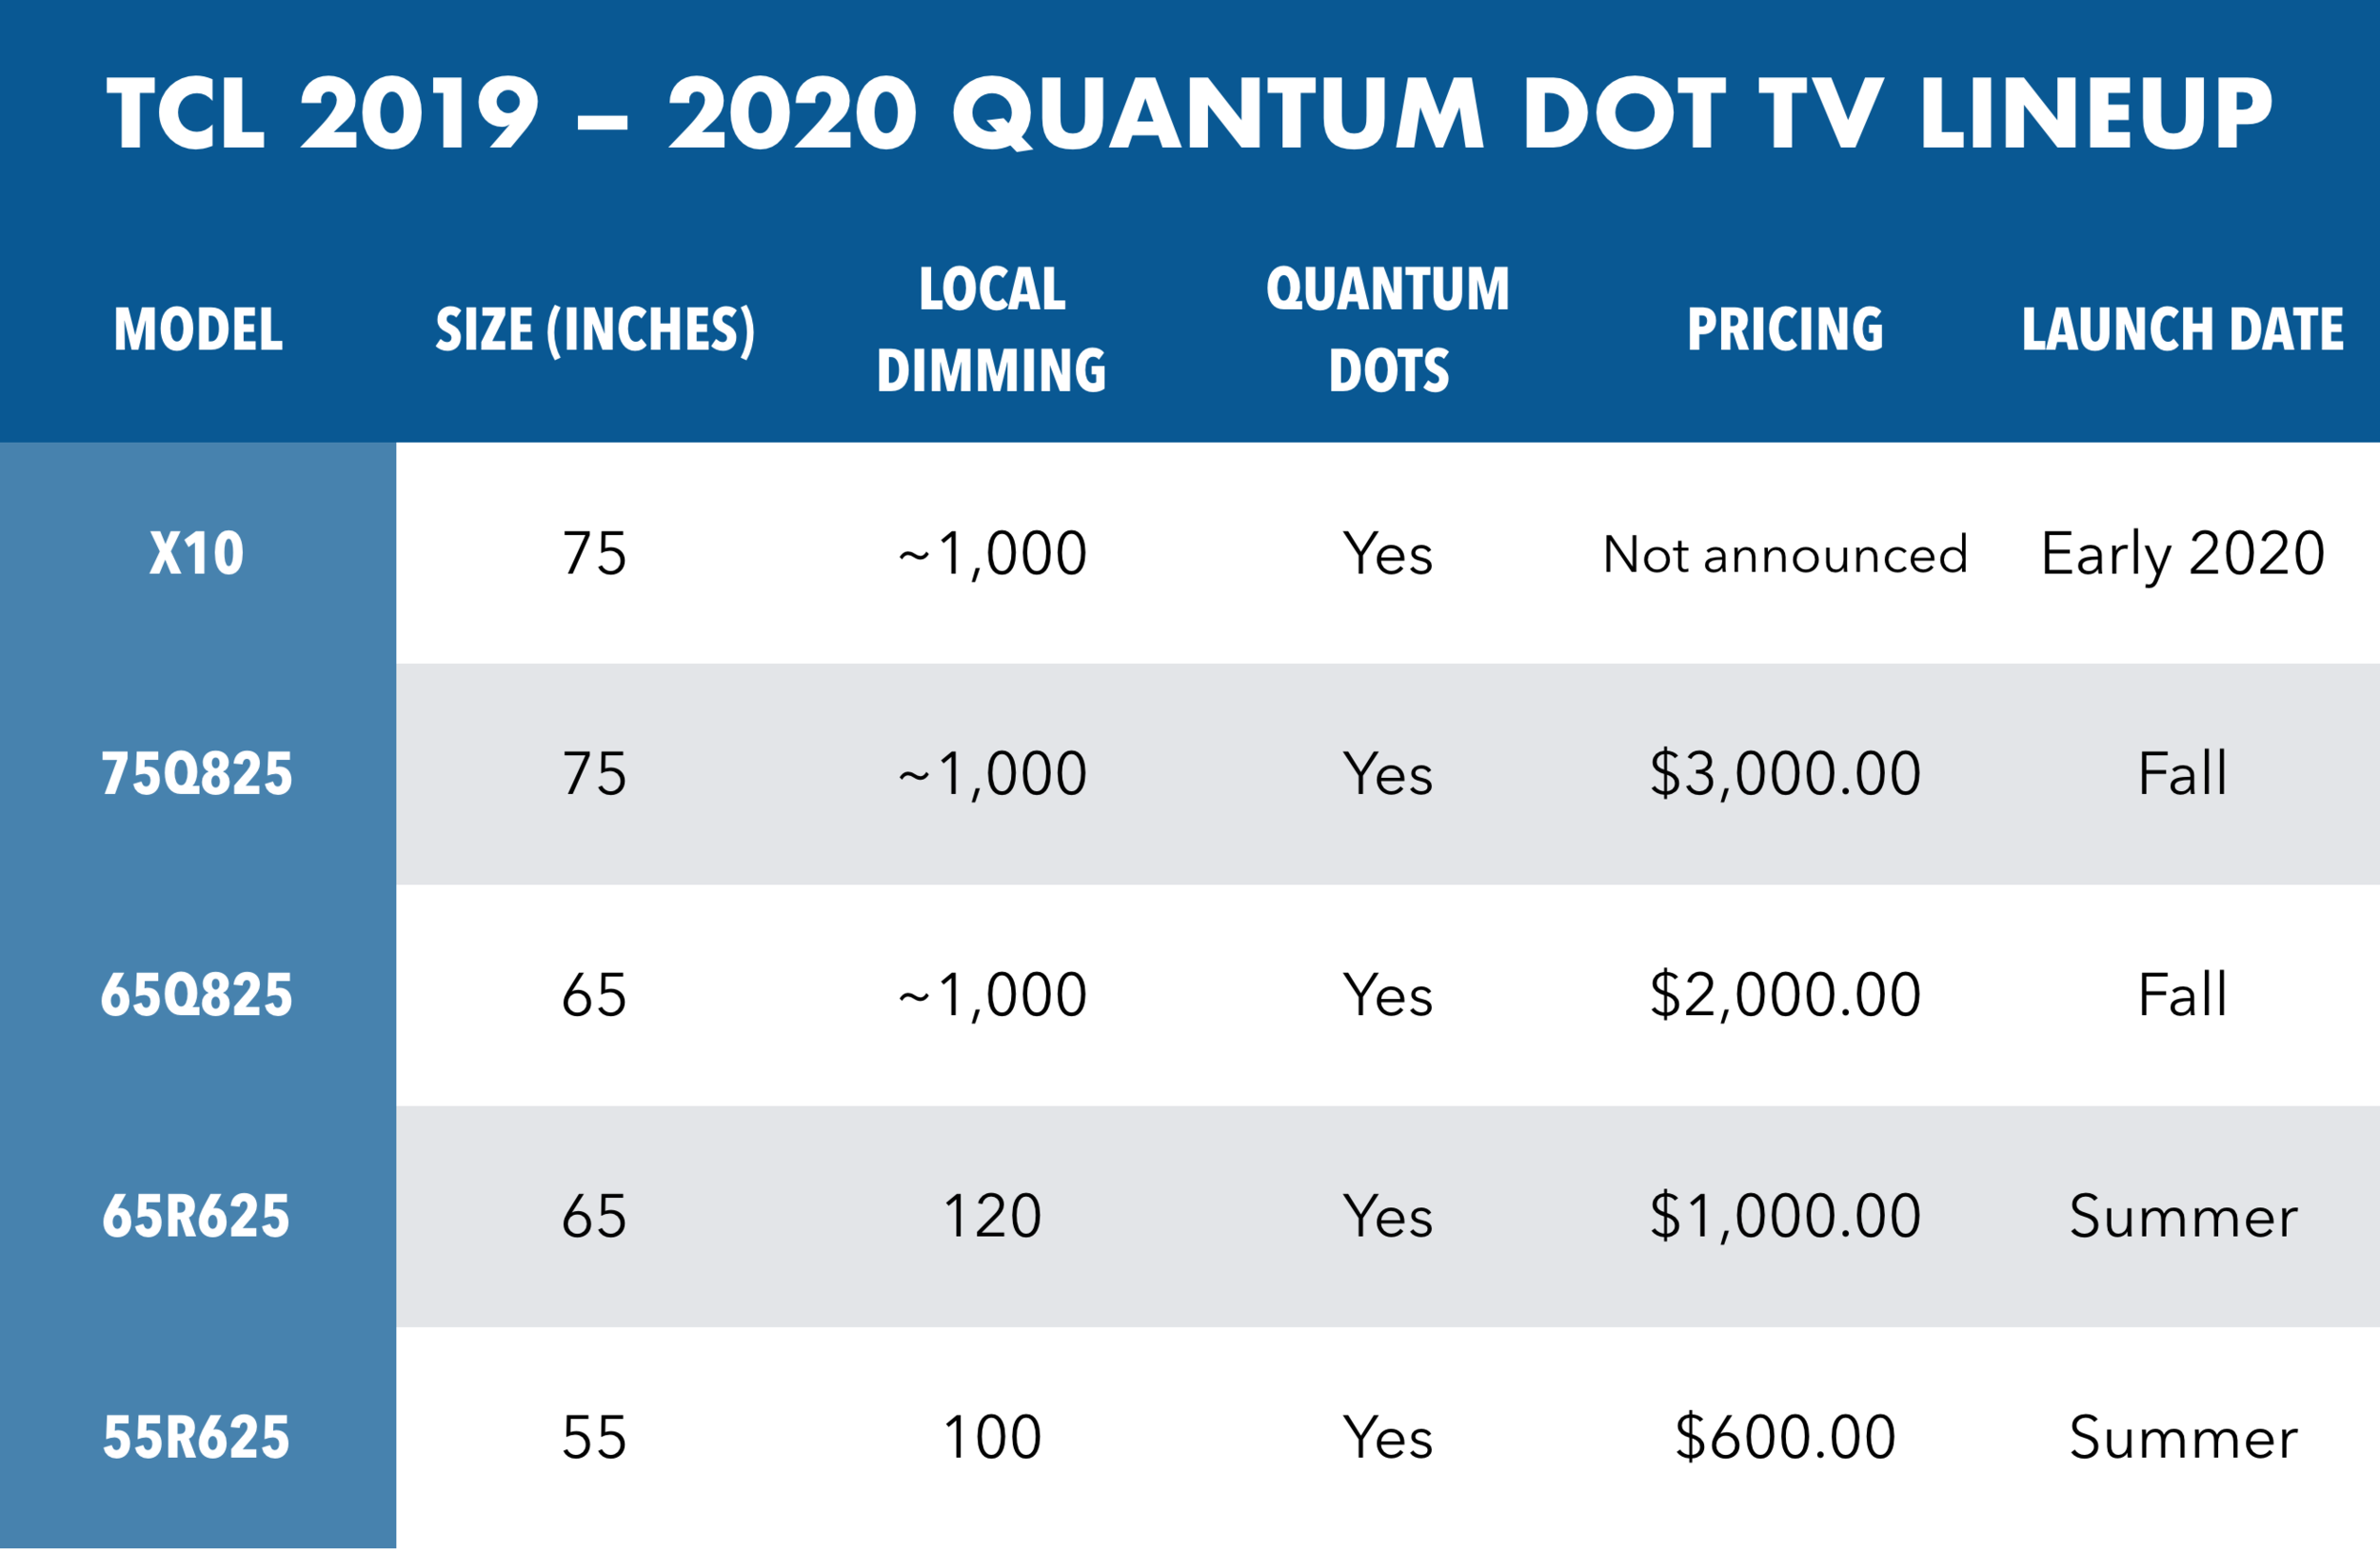 A detailed breakdown of TCL's 2019-2020 Quantum Dot TV lineup including five new models.